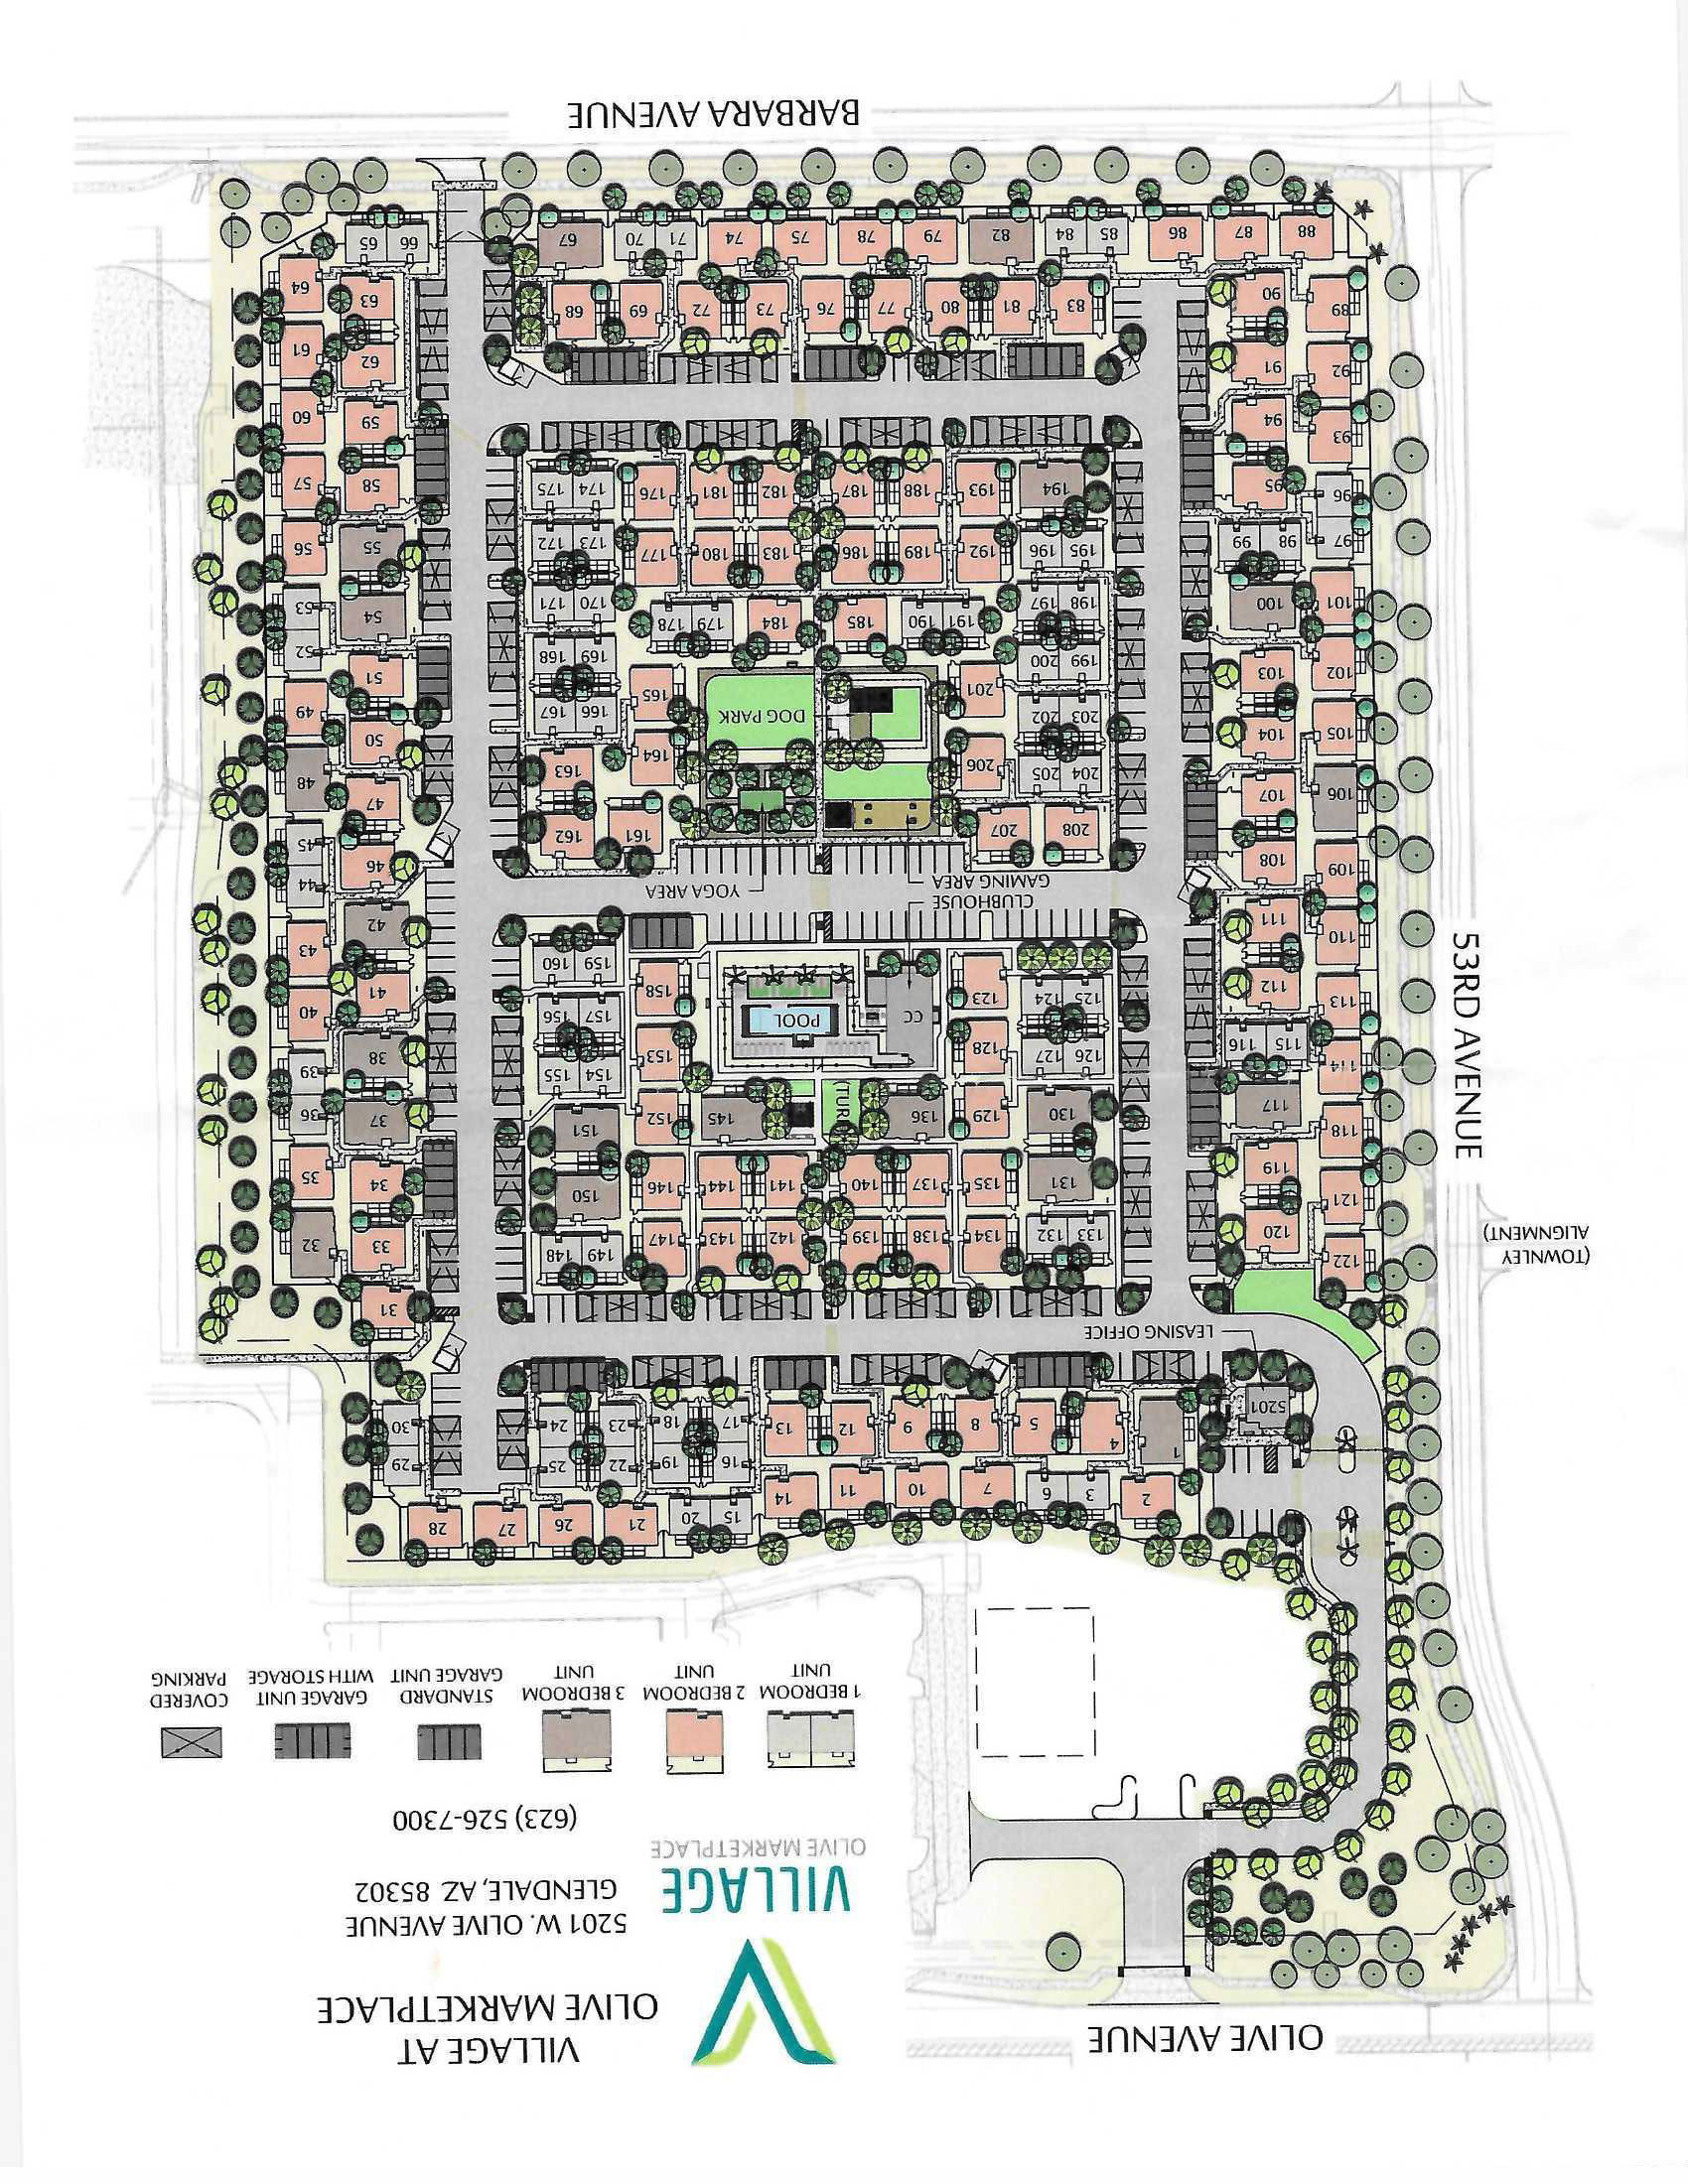 Site Plan for Olive Marketplace Apartments in Glendale, AZ